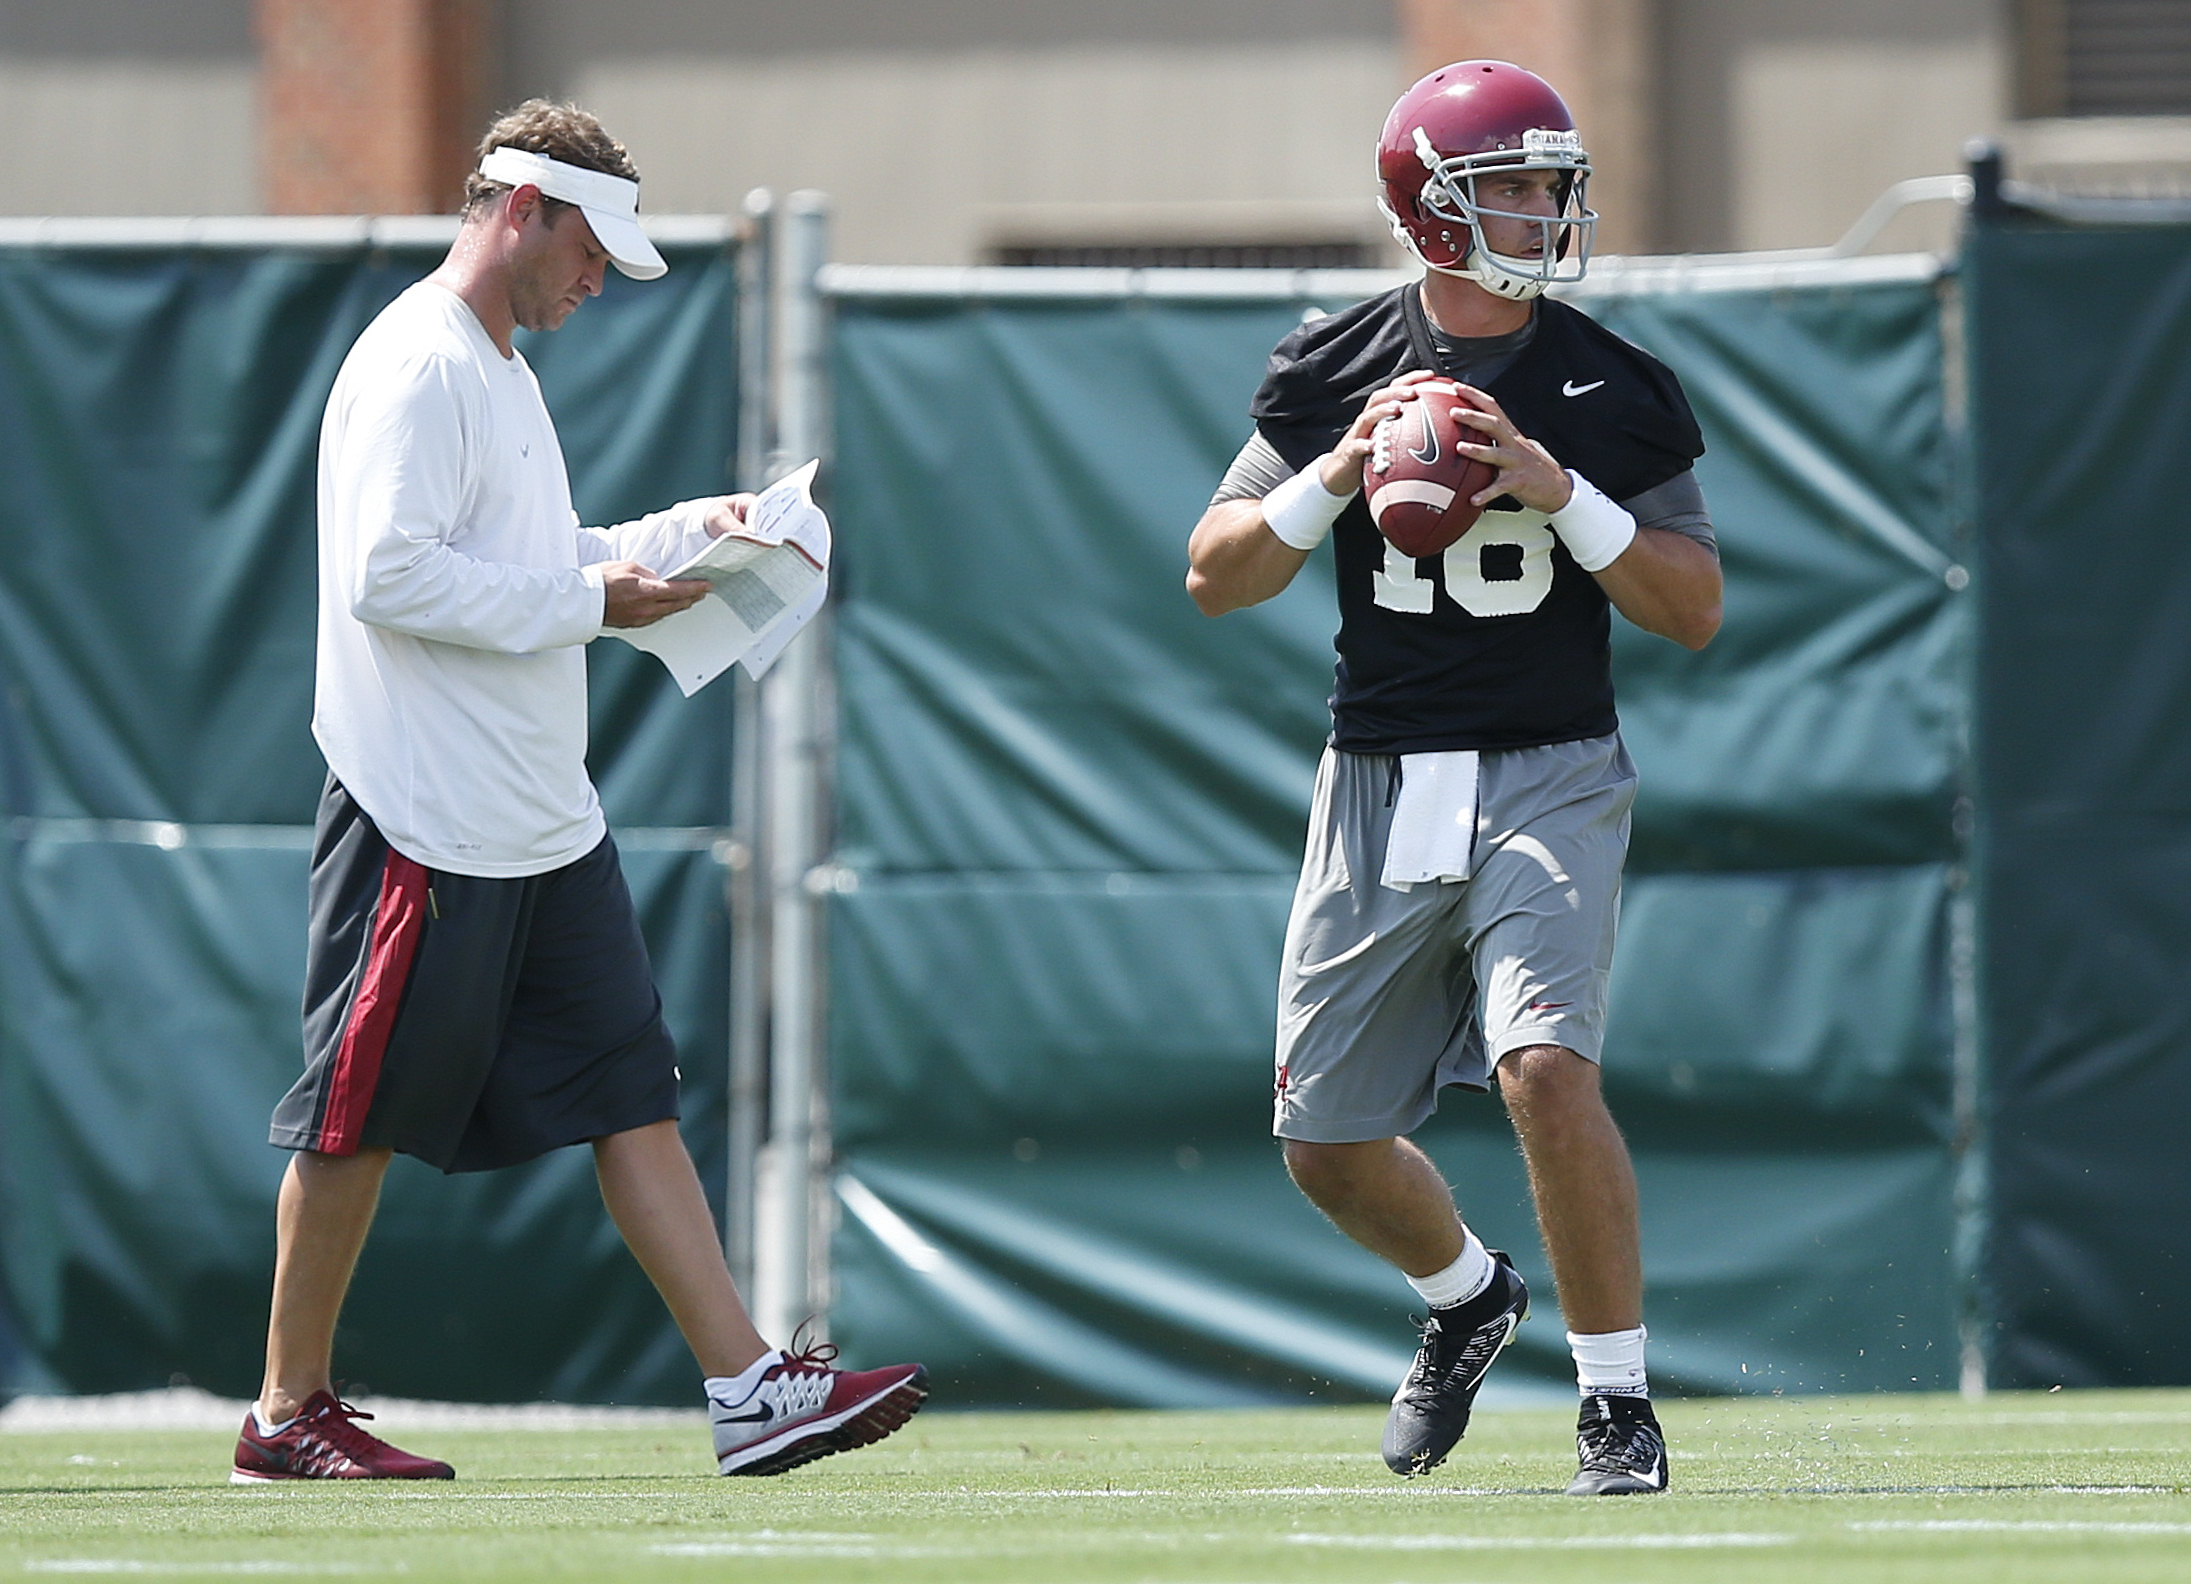 Alabama offensive coordinator Lane Kiffin walks behind quarterback Cooper Bateman as he sets back to pass during a drill at an NCAA college football practice, Thursday, Aug. 4, 2016, in Tuscaloosa, Ala. (AP Photo/Brynn Anderson)